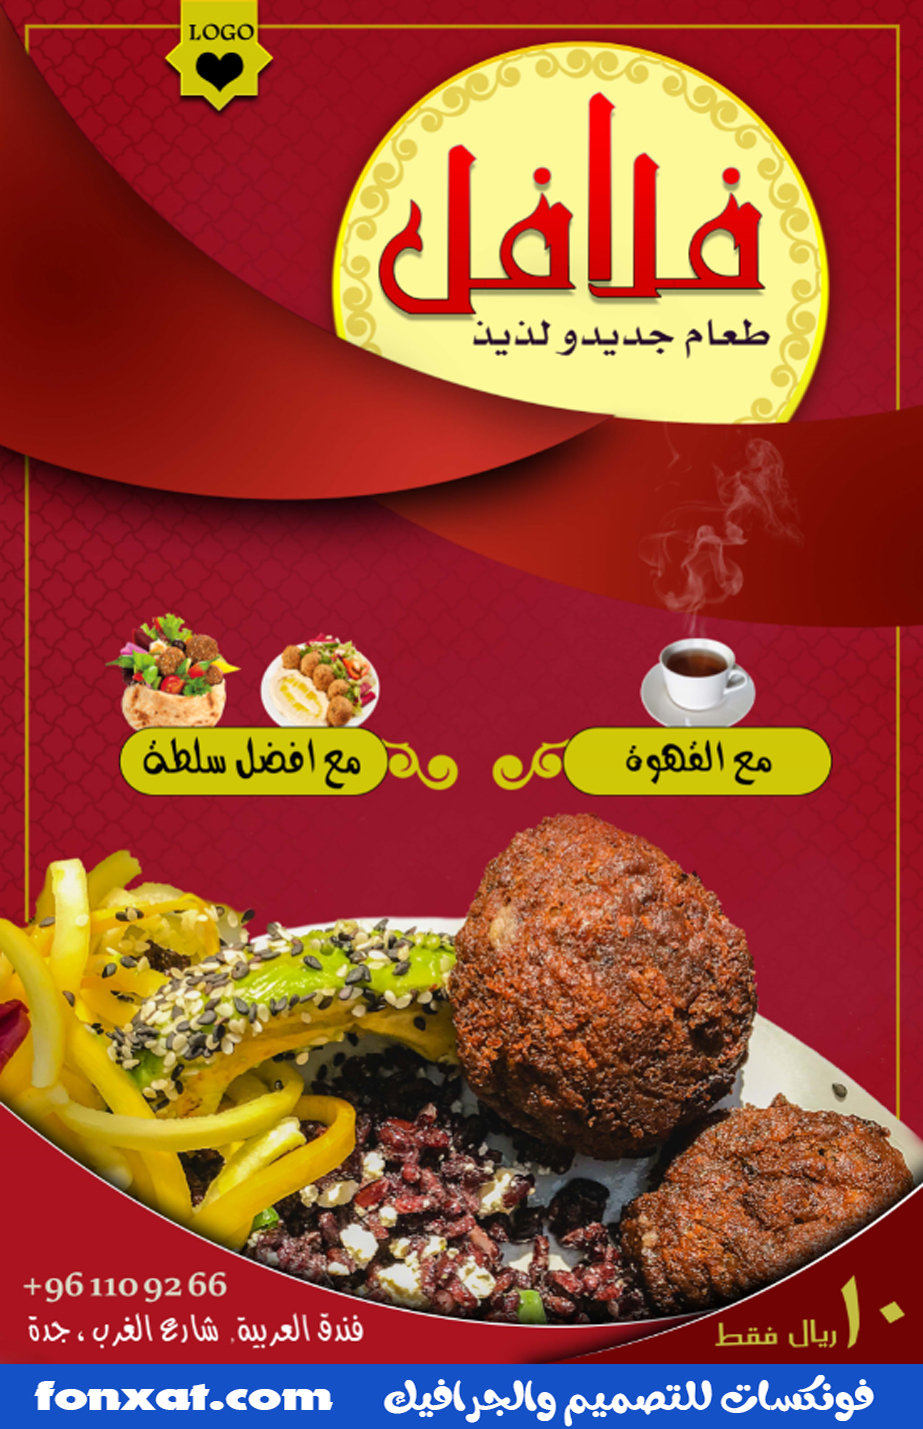 Falafel and food shop psd design template for falafel and toast